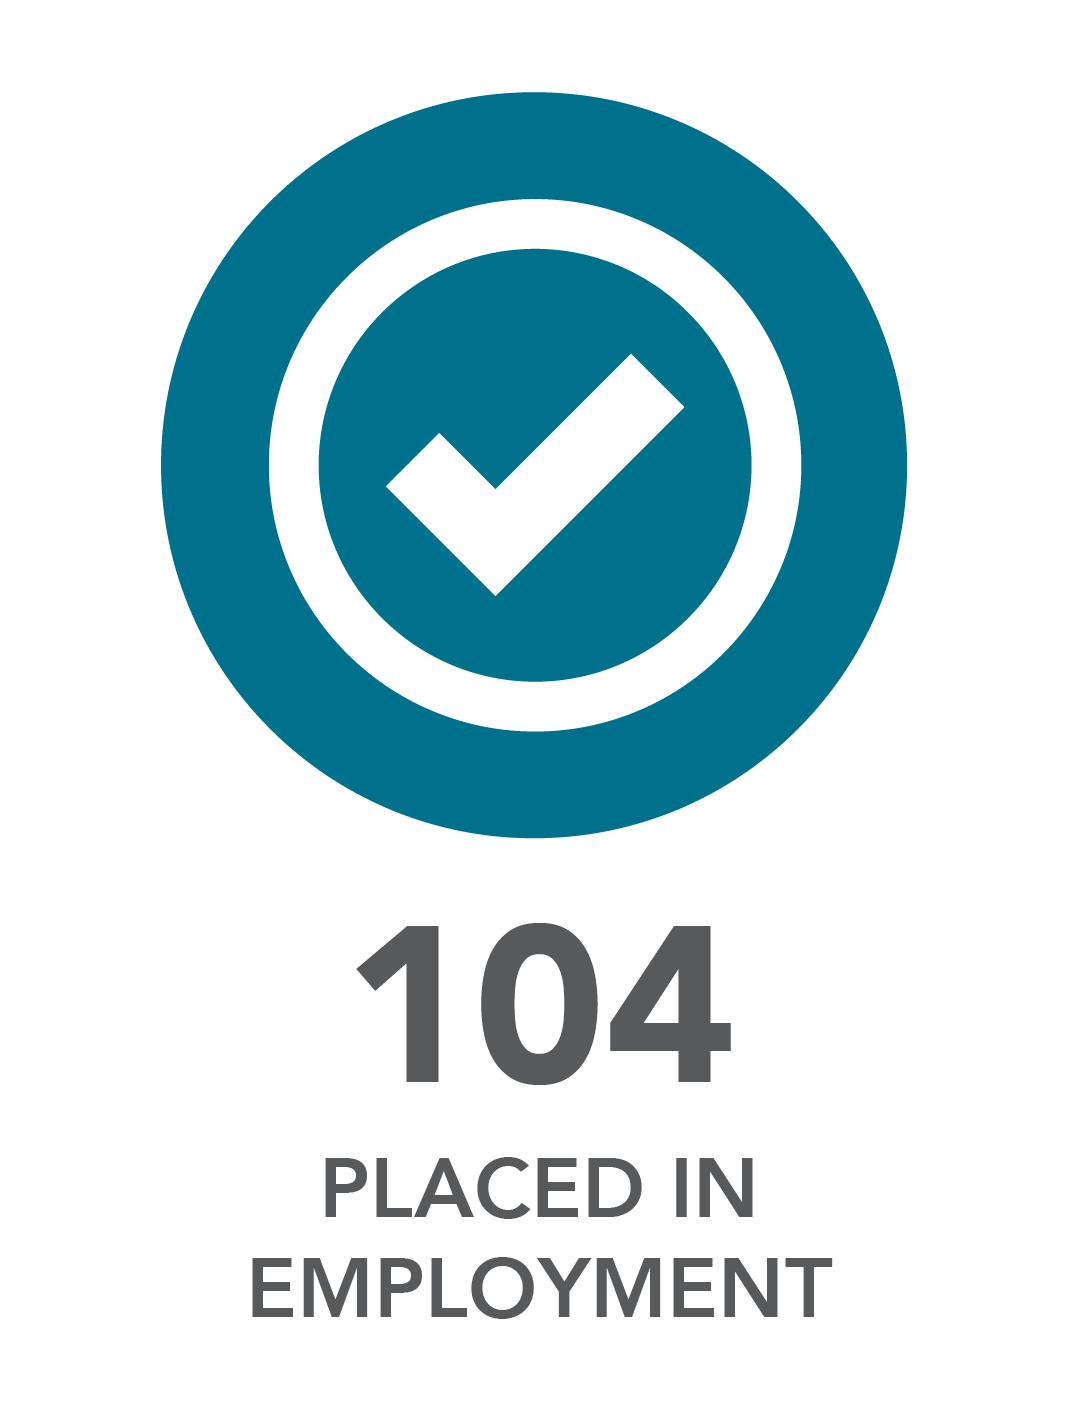 104 placed in employment.